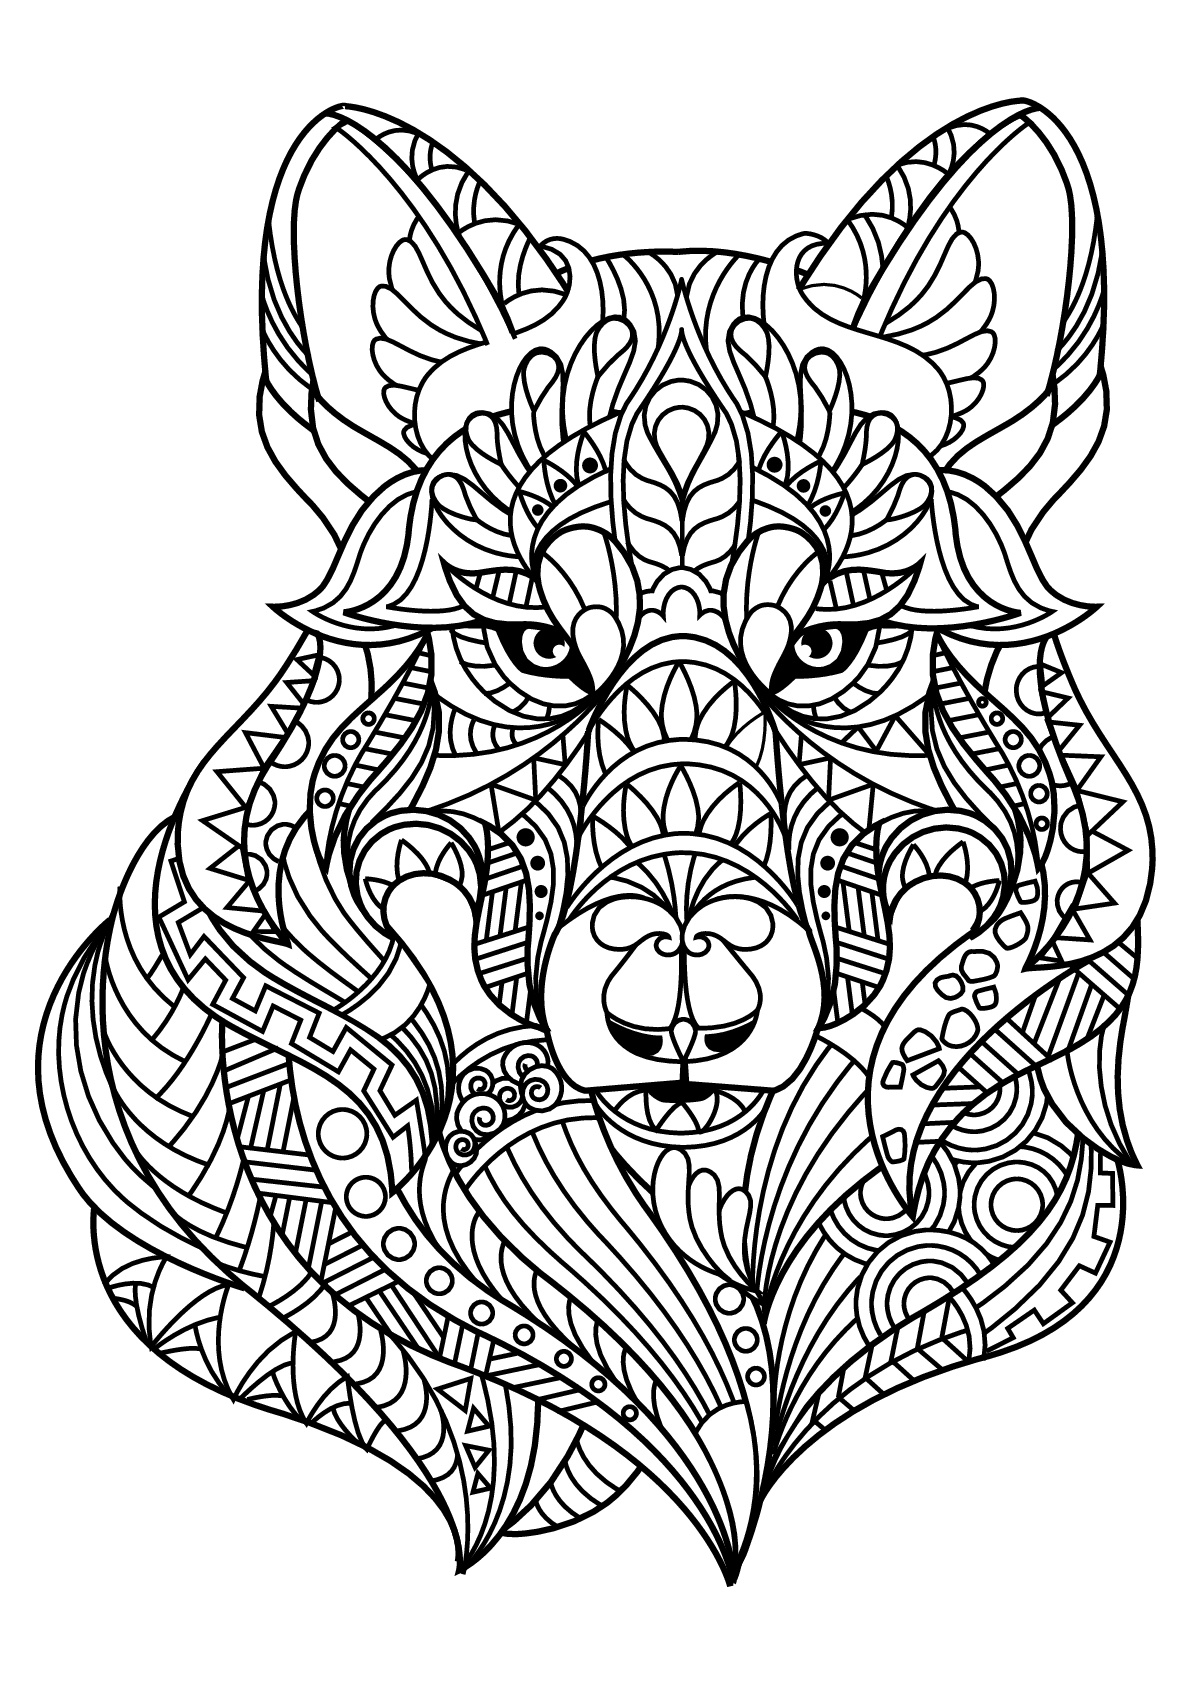 wolf coloring book free wolf coloring pages for adults printable to download wolf coloring book